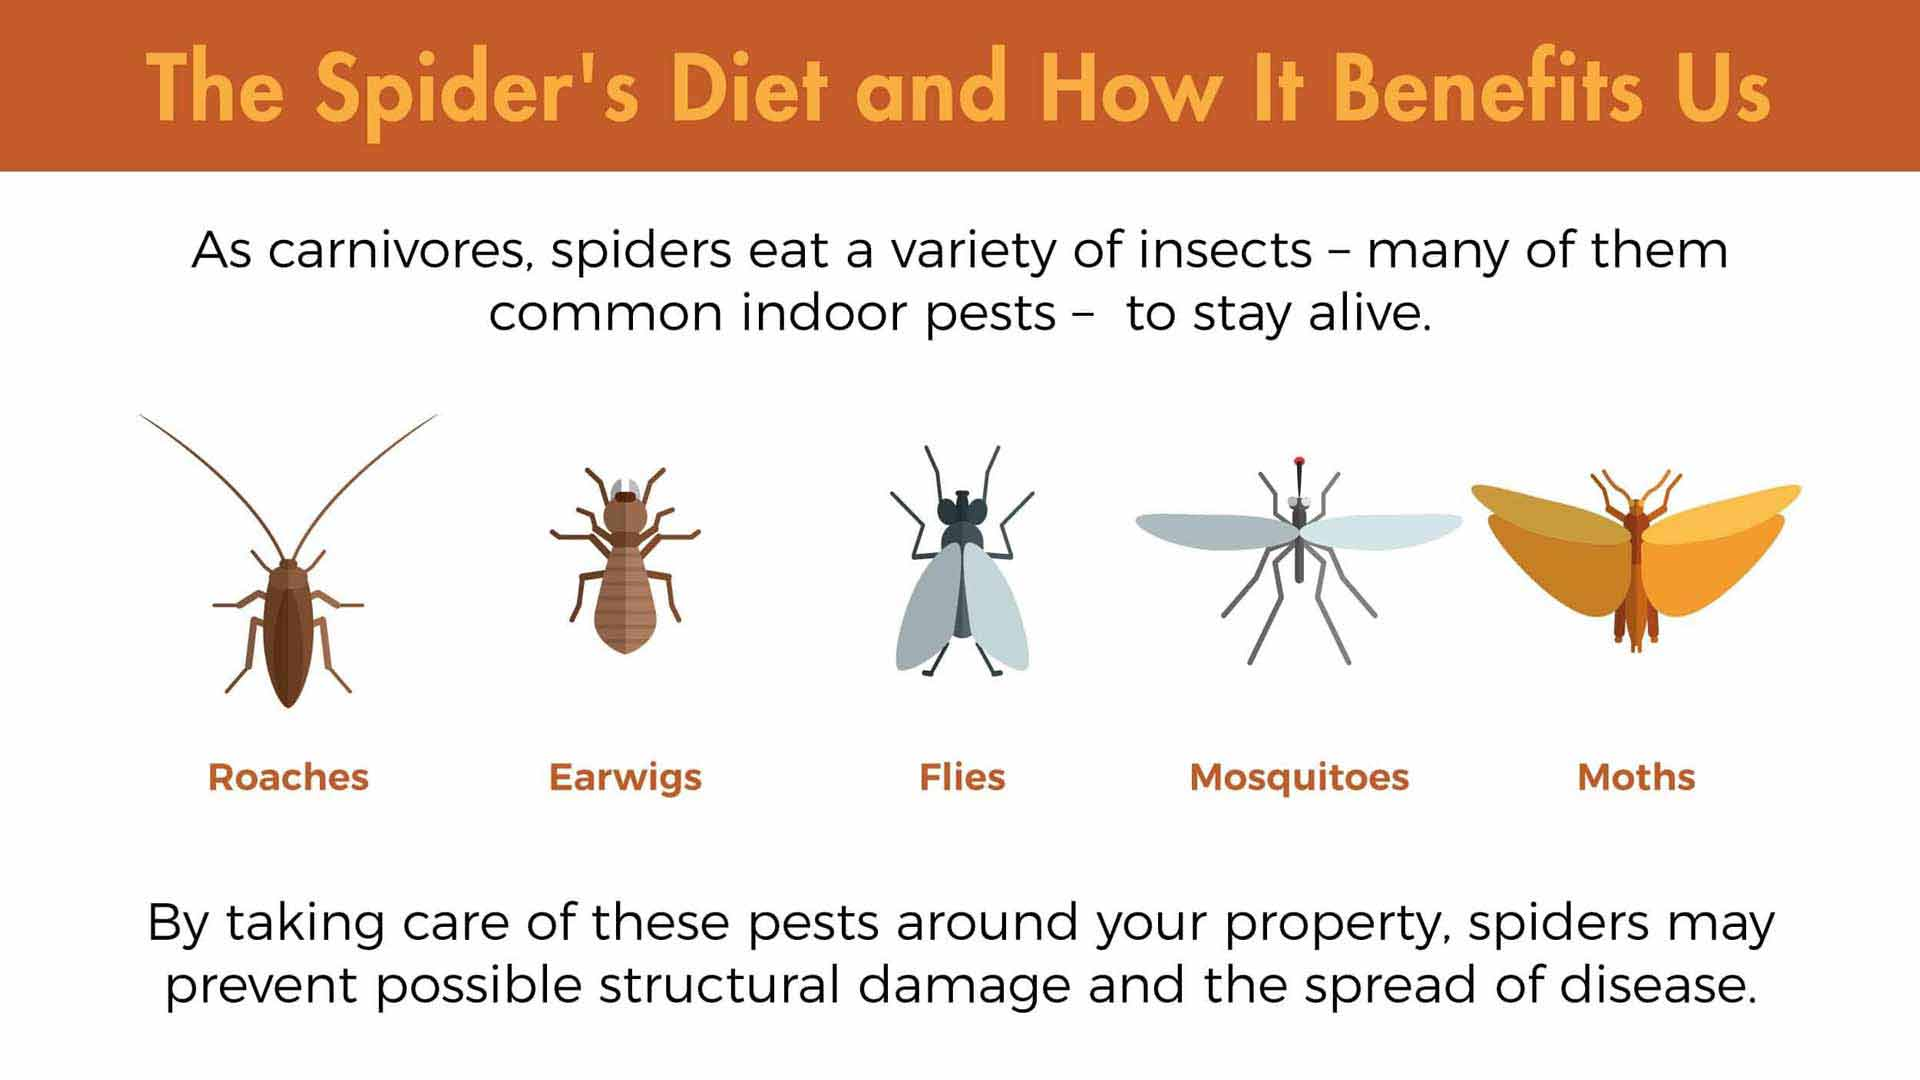 The spider diet is highly beneficial to us. As carnivores, spiders eat a variety of insects – many of them common indoor pests – to stay alive. By taking care of roaches, earwigs, flies, mosquitoes, and moths around your property, spiders may prevent possible structural damage and the spread of disease.